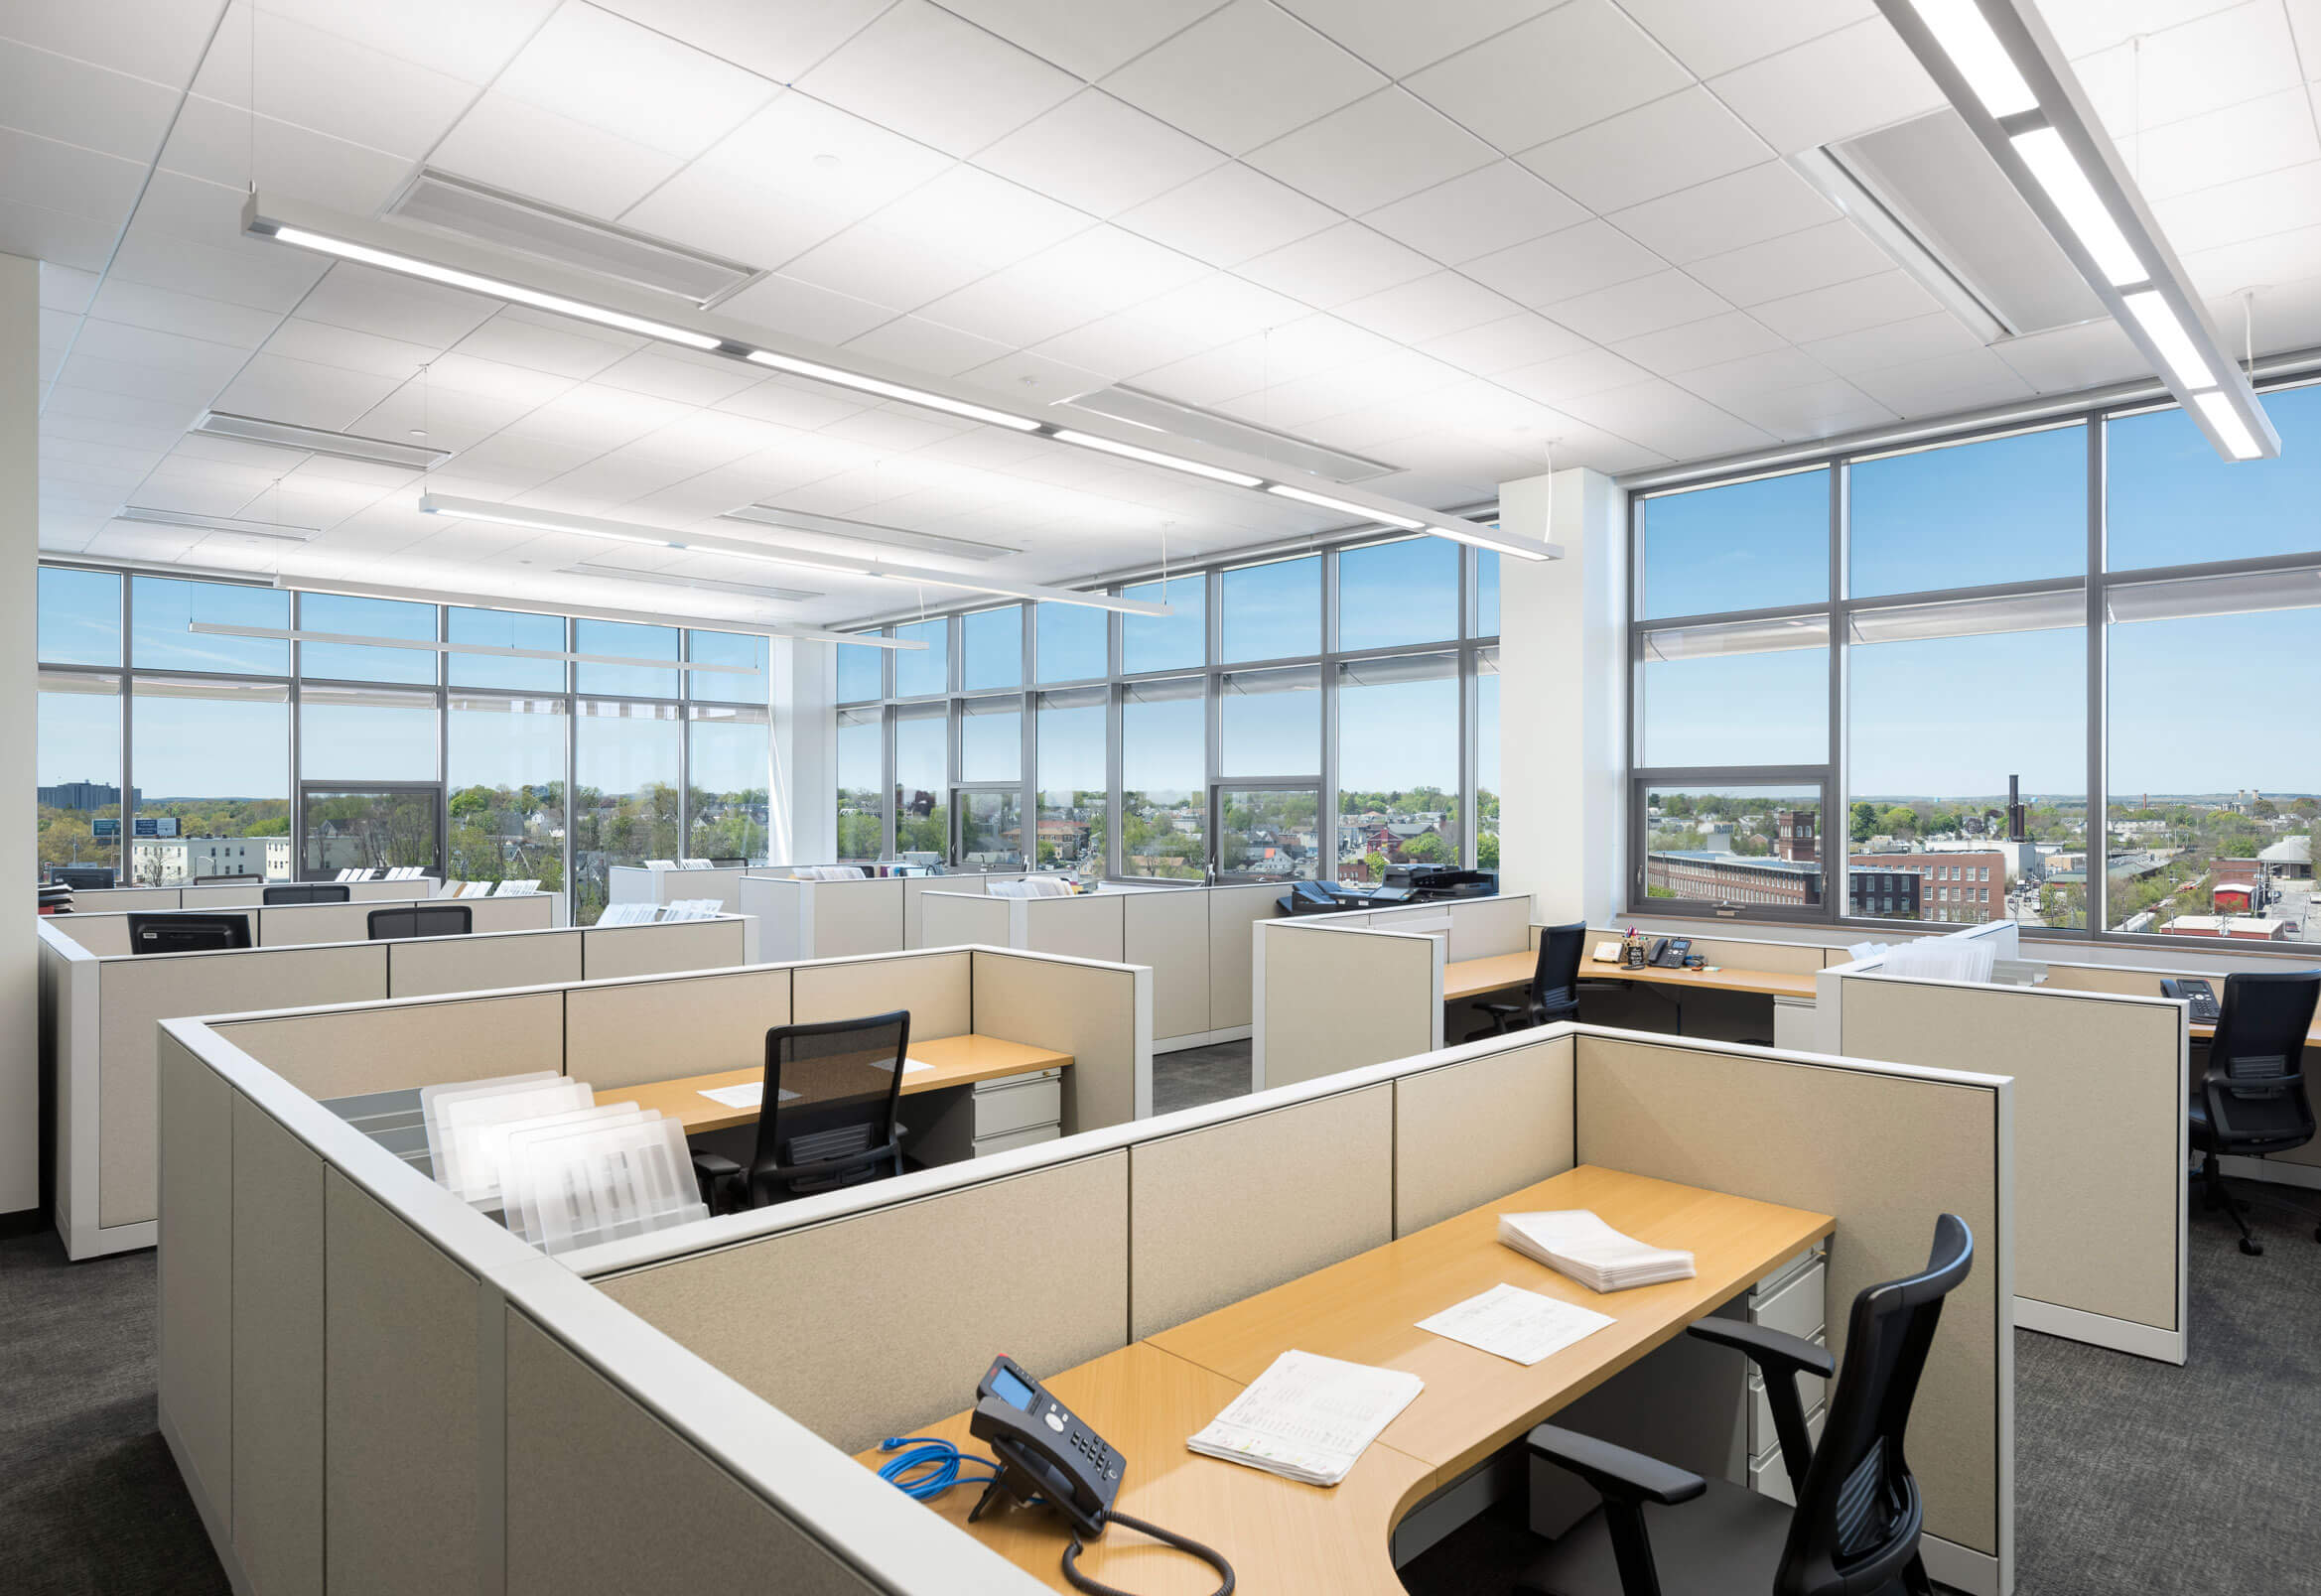 Spacious wooden office desks framed by a corner of floor-to-ceiling glass windows with a view onto the city of Lowell.